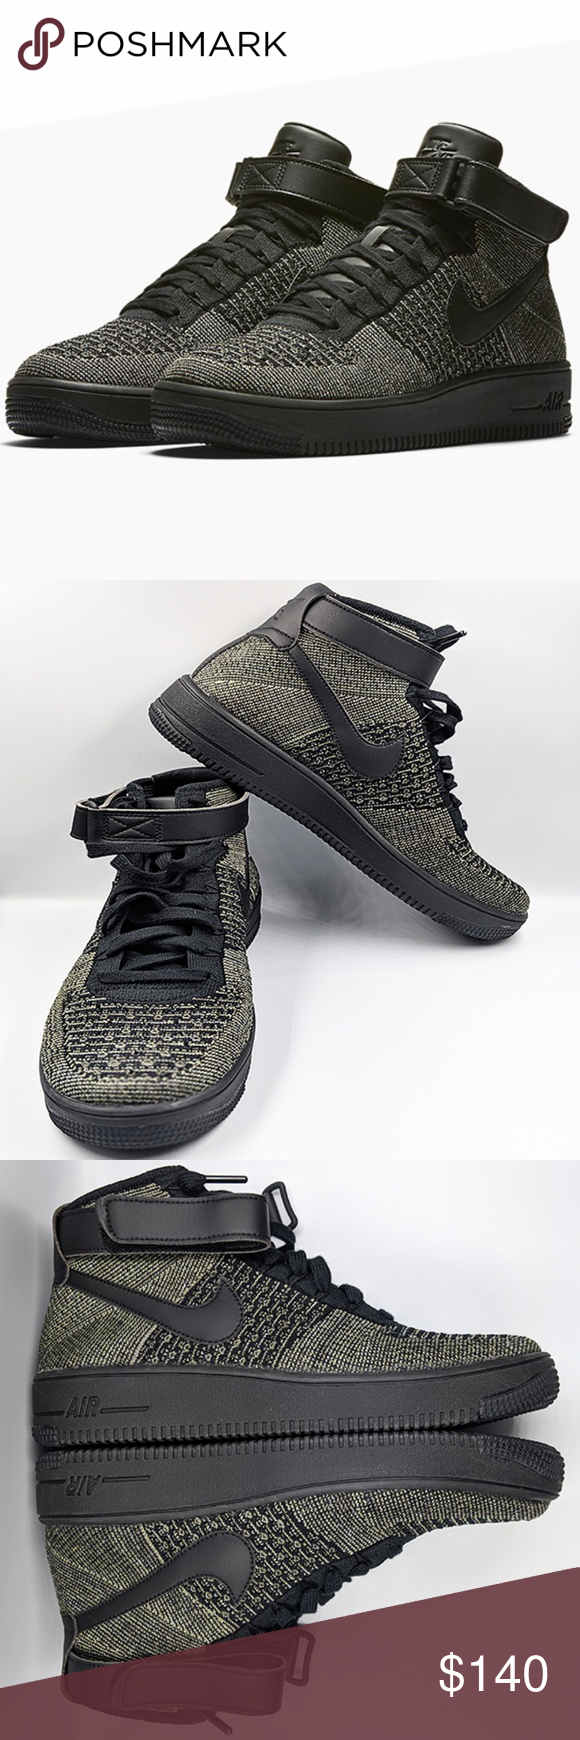 Nike . Air Force 1 Ultra Flyknit Mid The Nike Air Force 1